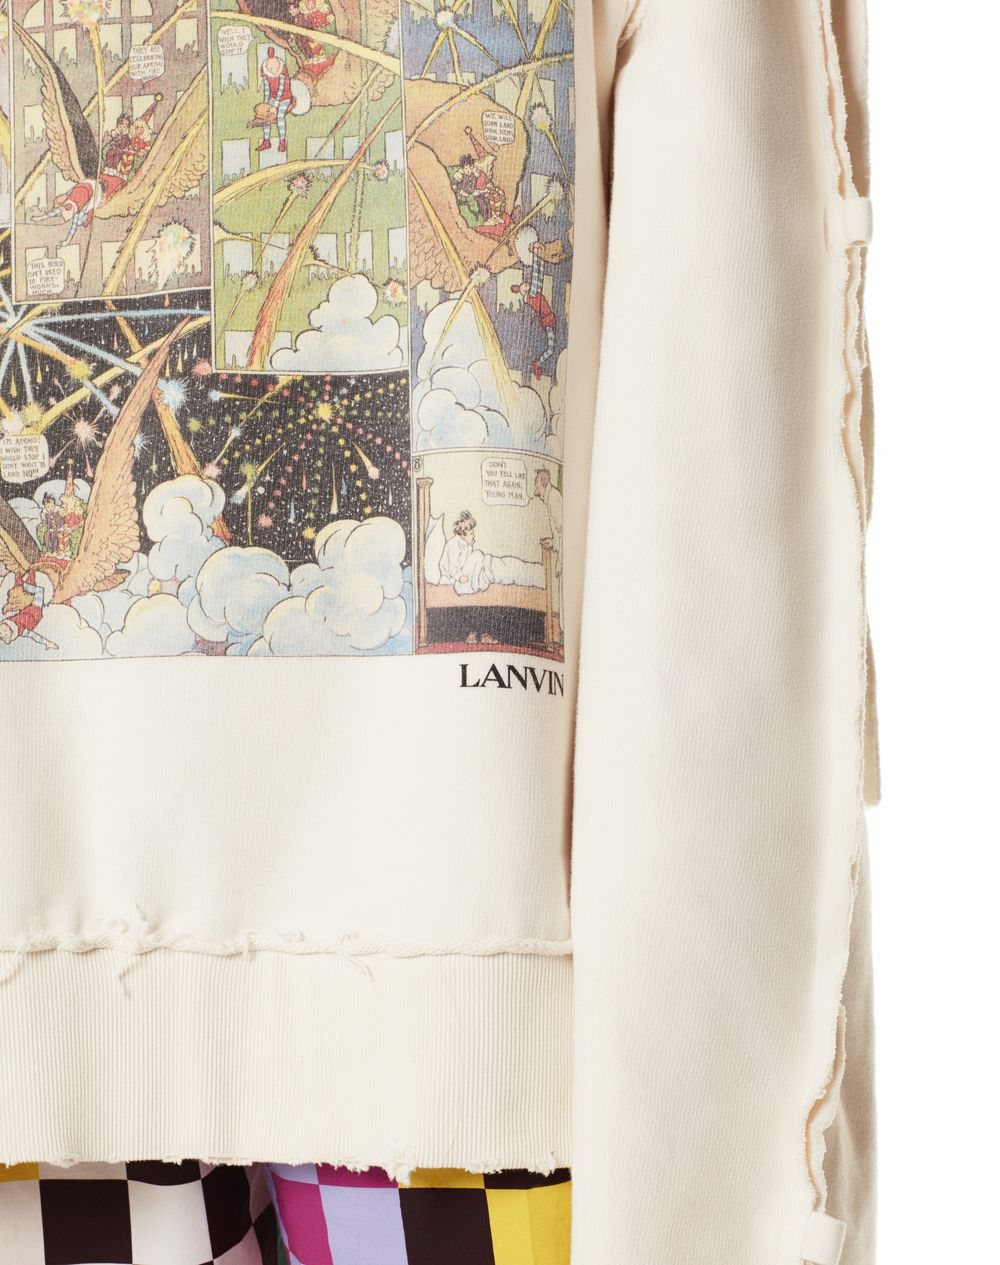 LITTLE NEMO PRINT SWEATSHIRT - Lanvin